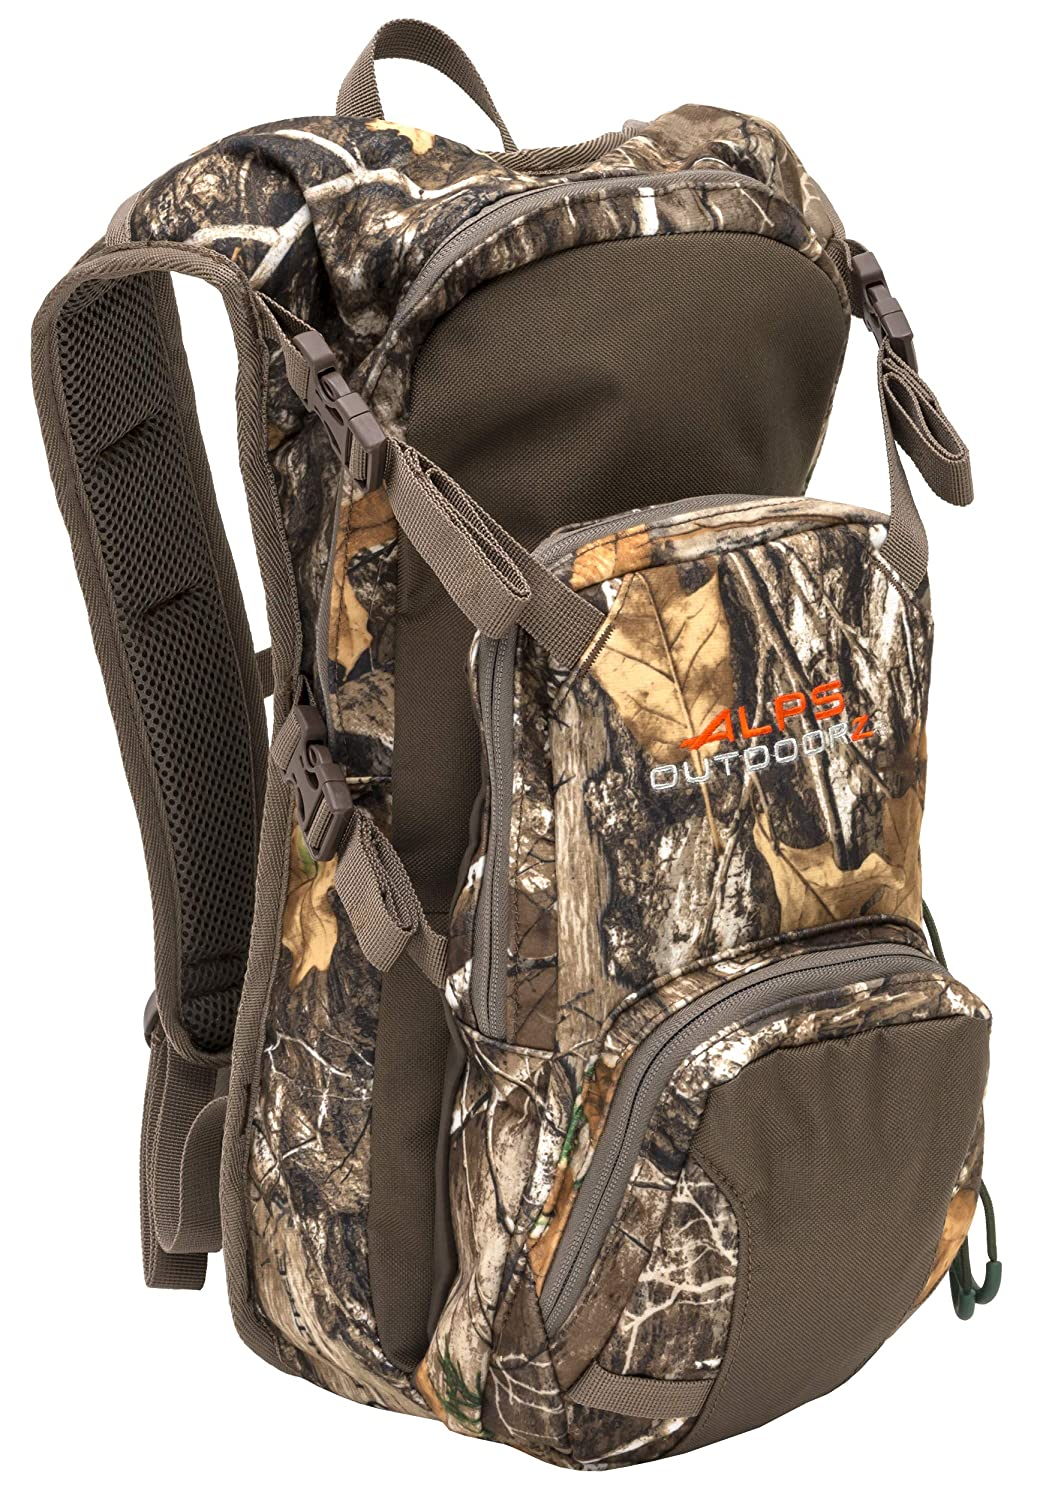 ALPS OutdoorZ 9411100 Willow Creek Pack (Realtree Xtra HD) by ALPS OutdoorZ   B008ZXKIHE